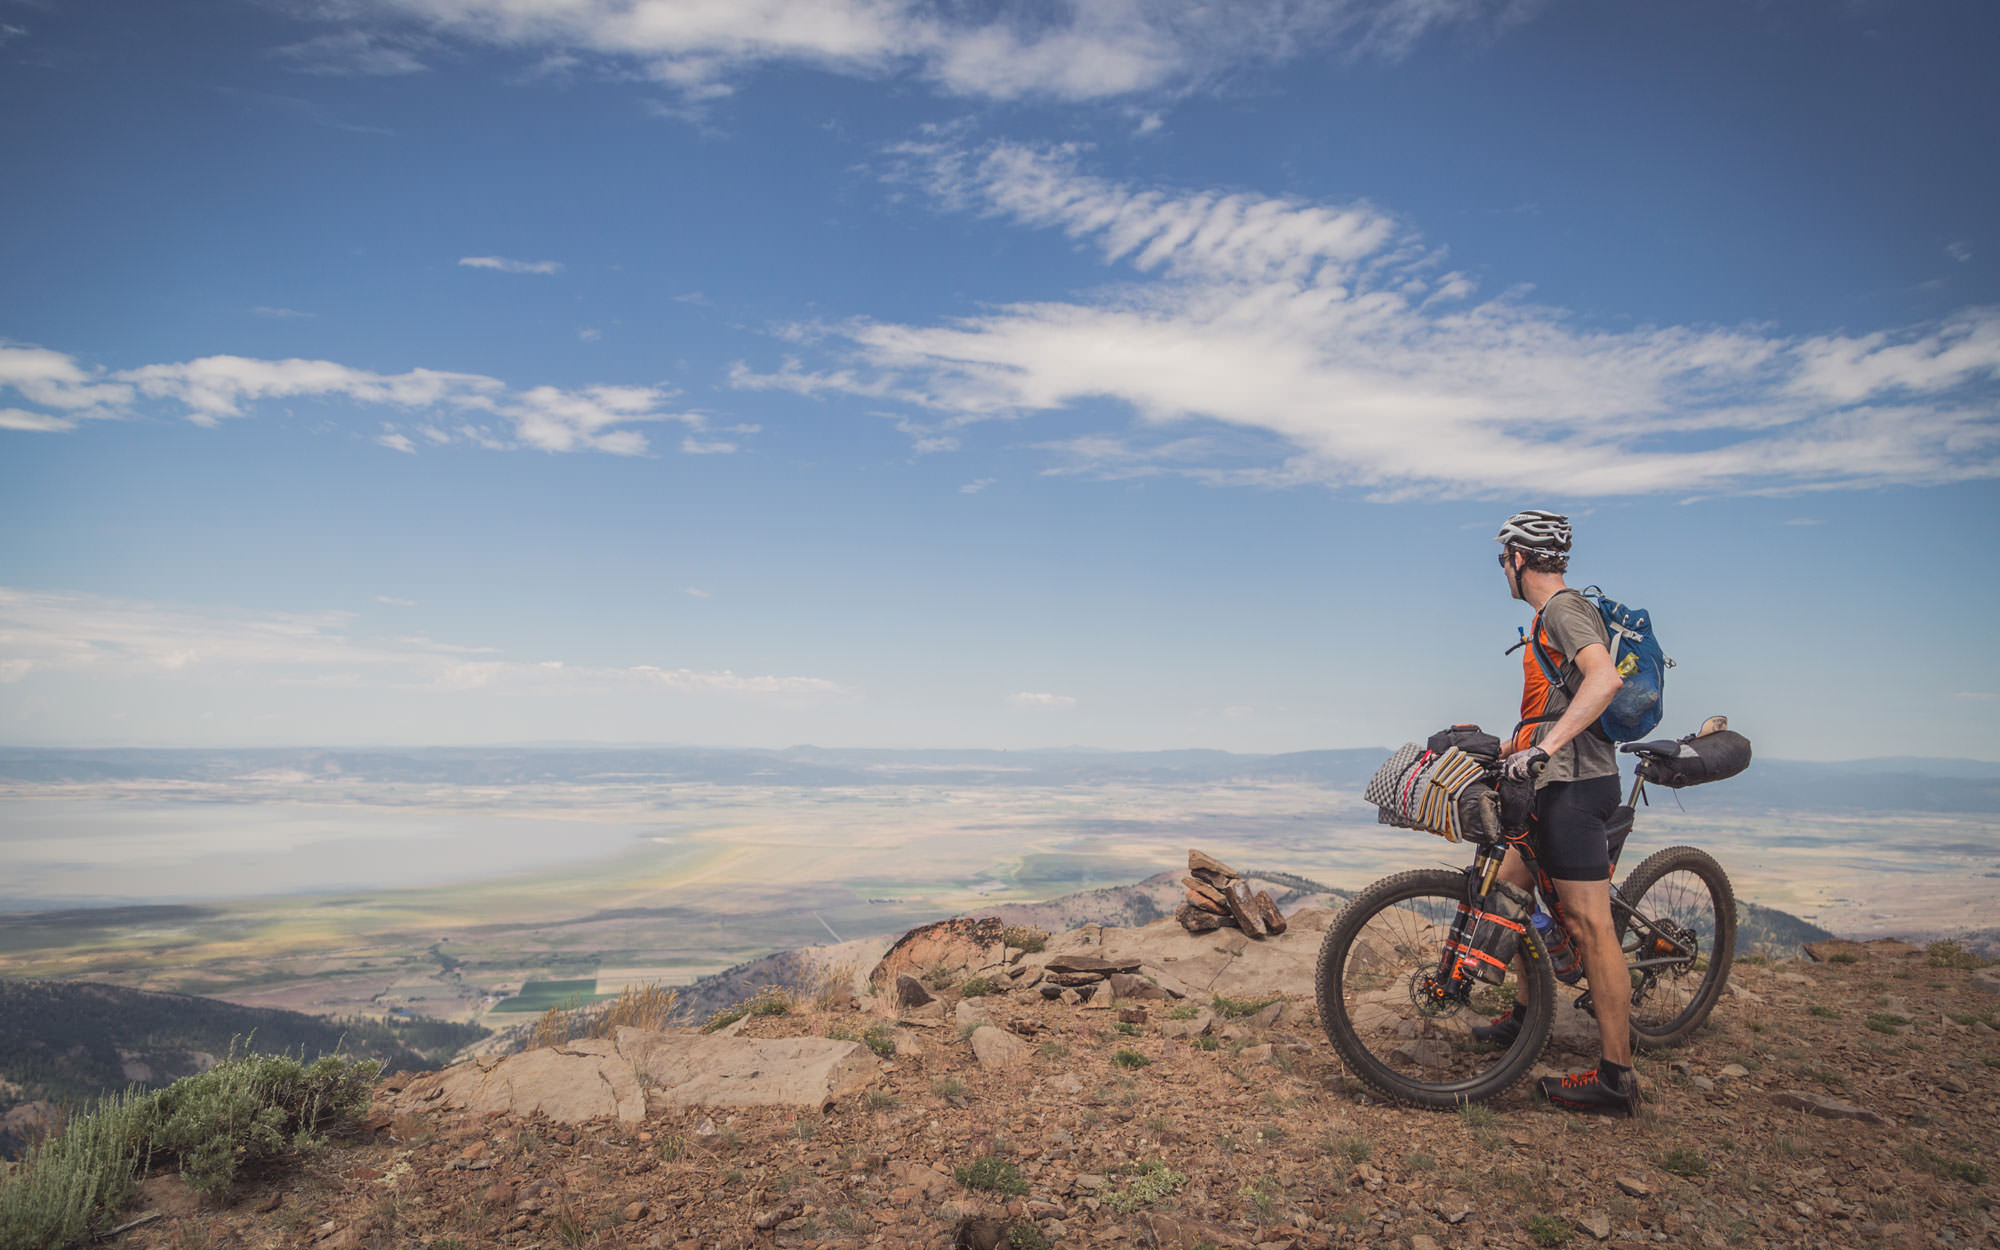 A mountain biker looks over the clouds above a valley.